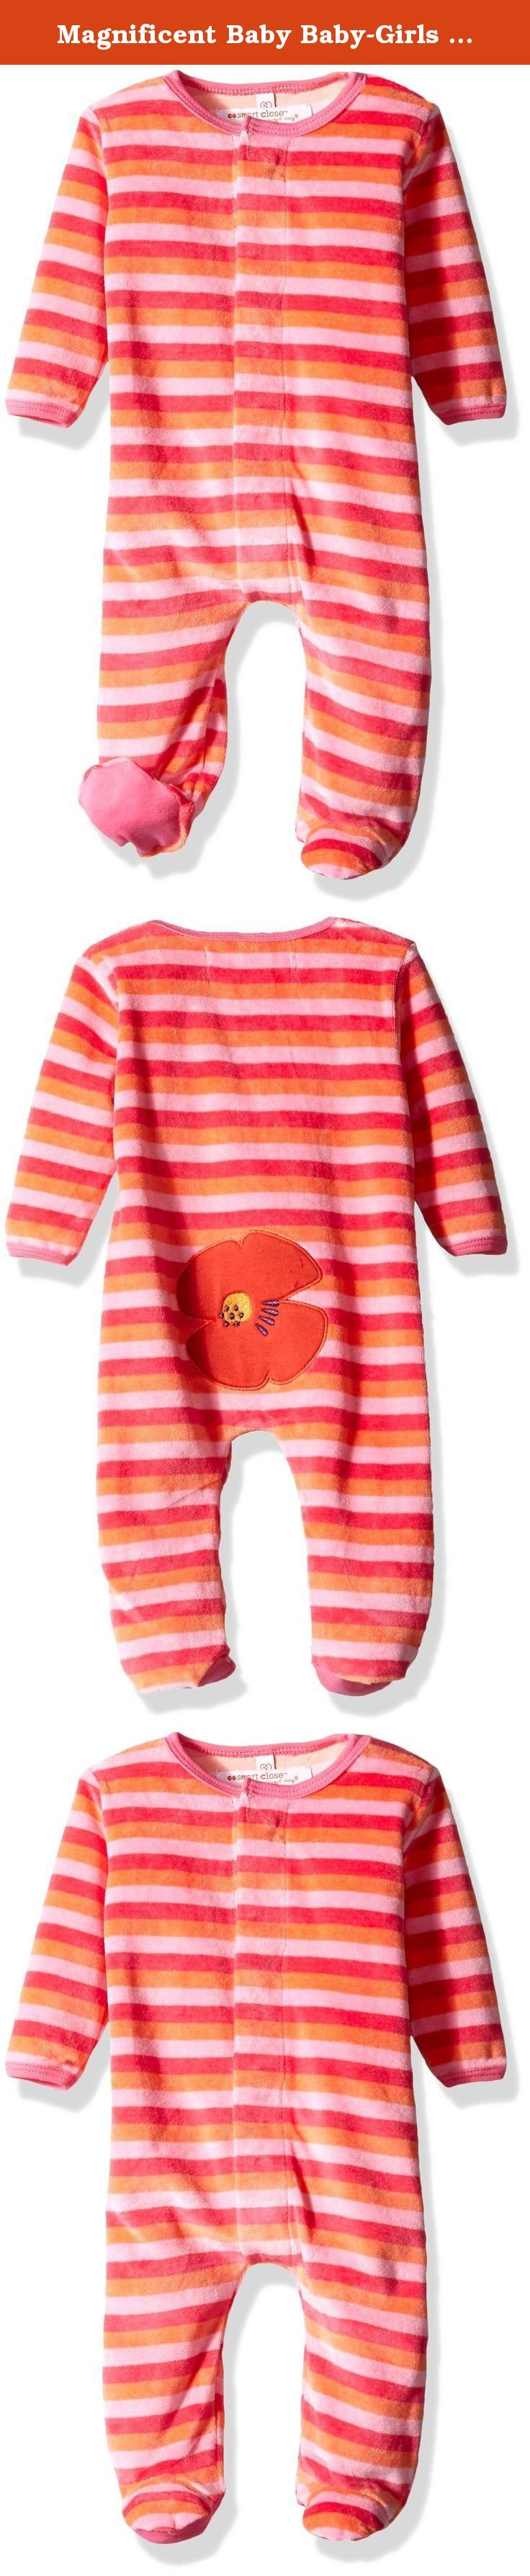 Magnificent Baby Baby-Girls Poppie Stripe Velour Footie with Applique, Poppies Stripes, New Born. Our footie just got warmer. Velour footie, featuring our time saving smart close magnetic fasteners, gets baby dressed faster than Clark Kent turns into superman. No longer dread changing time - simply open outfit, insert baby and the outfit practically dresses itself. Ultra-soft velour is perfect for even the chilliest days.